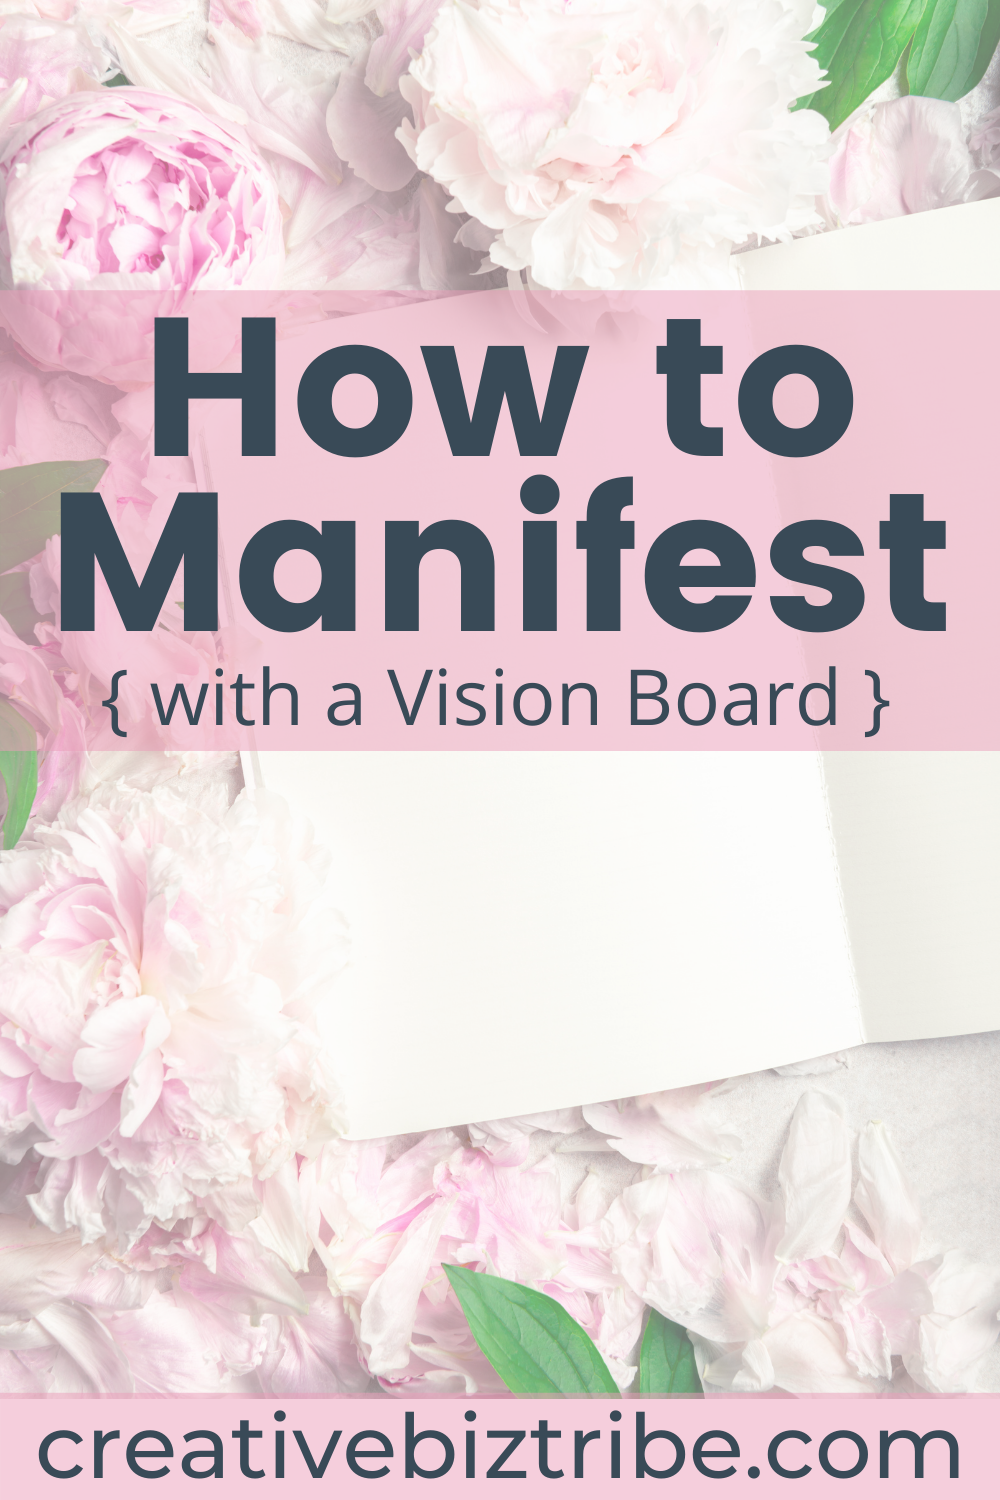 How to Manifest with a Vision Board creativebiztribe.com #manifest #visionboard #visionboards creative